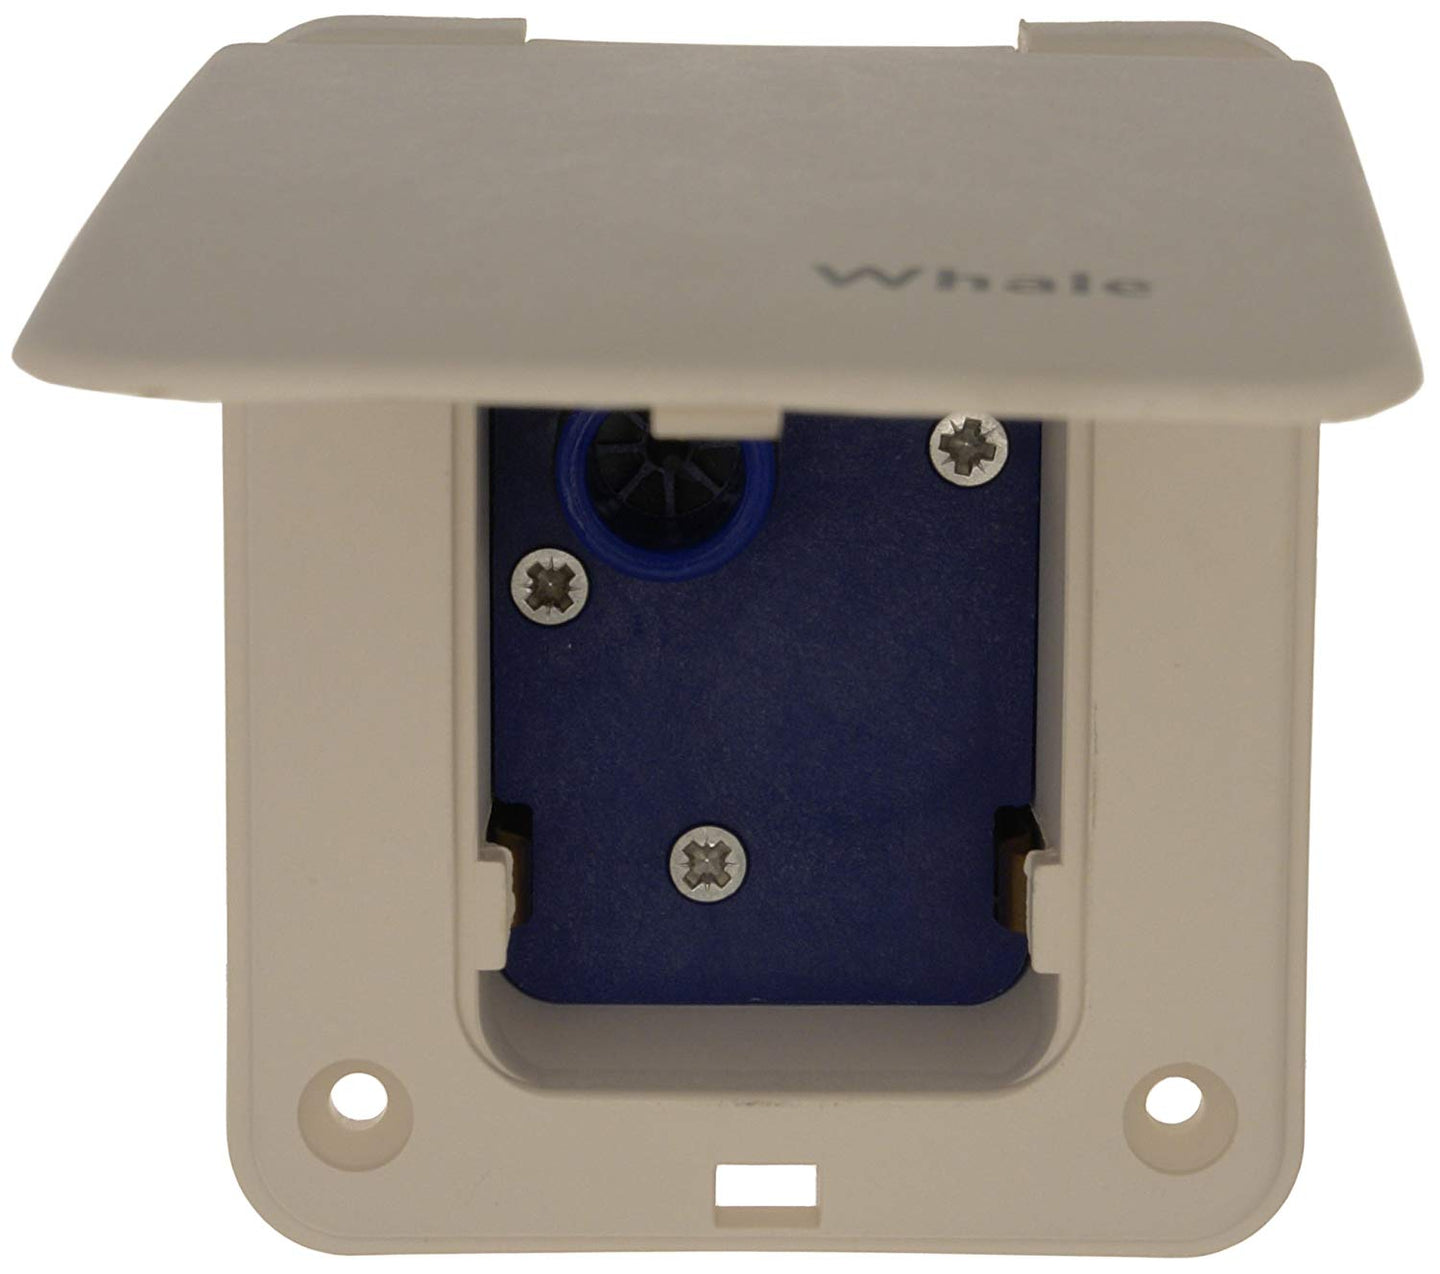 Whale ES1000 Water Master Inlet Socket for Micro Switched Water Systems, Ivory/White